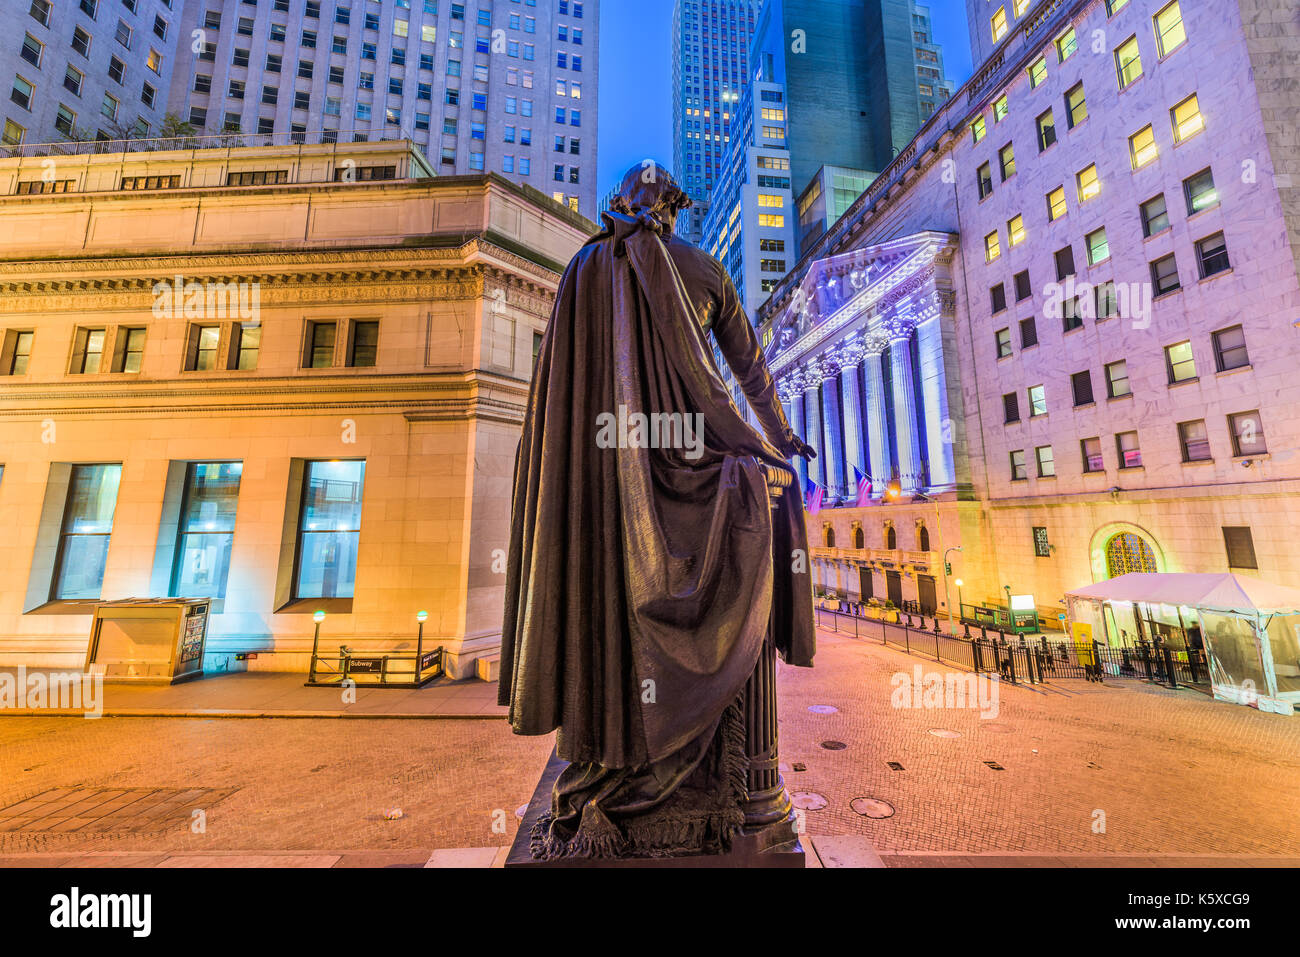 New York City, USA on Wall Street from Federal Hall in Lower Manhattan. - Stock Image